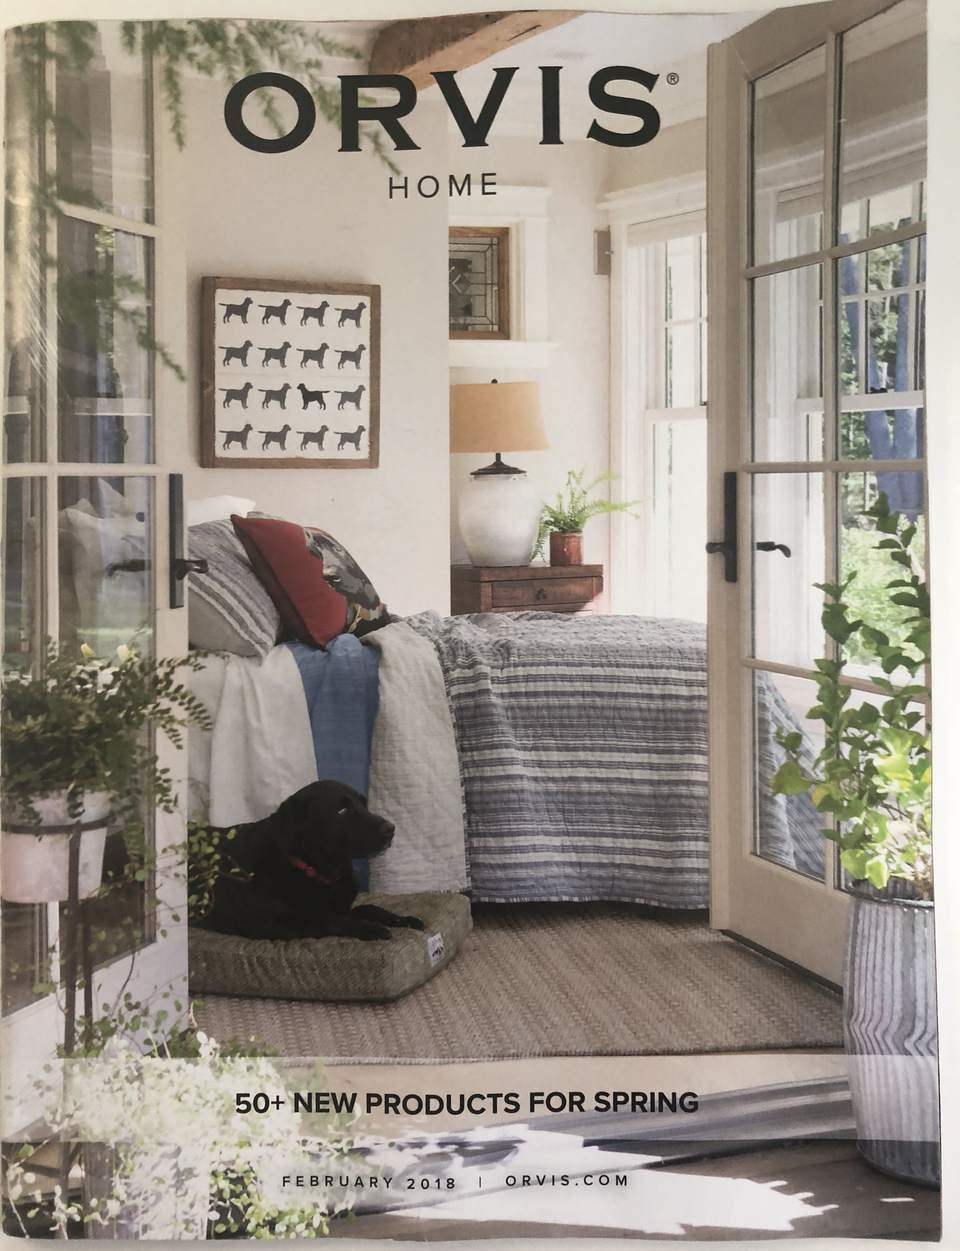 Catalogs by Mail Home Decor Fresh 29 Free Home Decor Catalogs You Can Get In the Mail